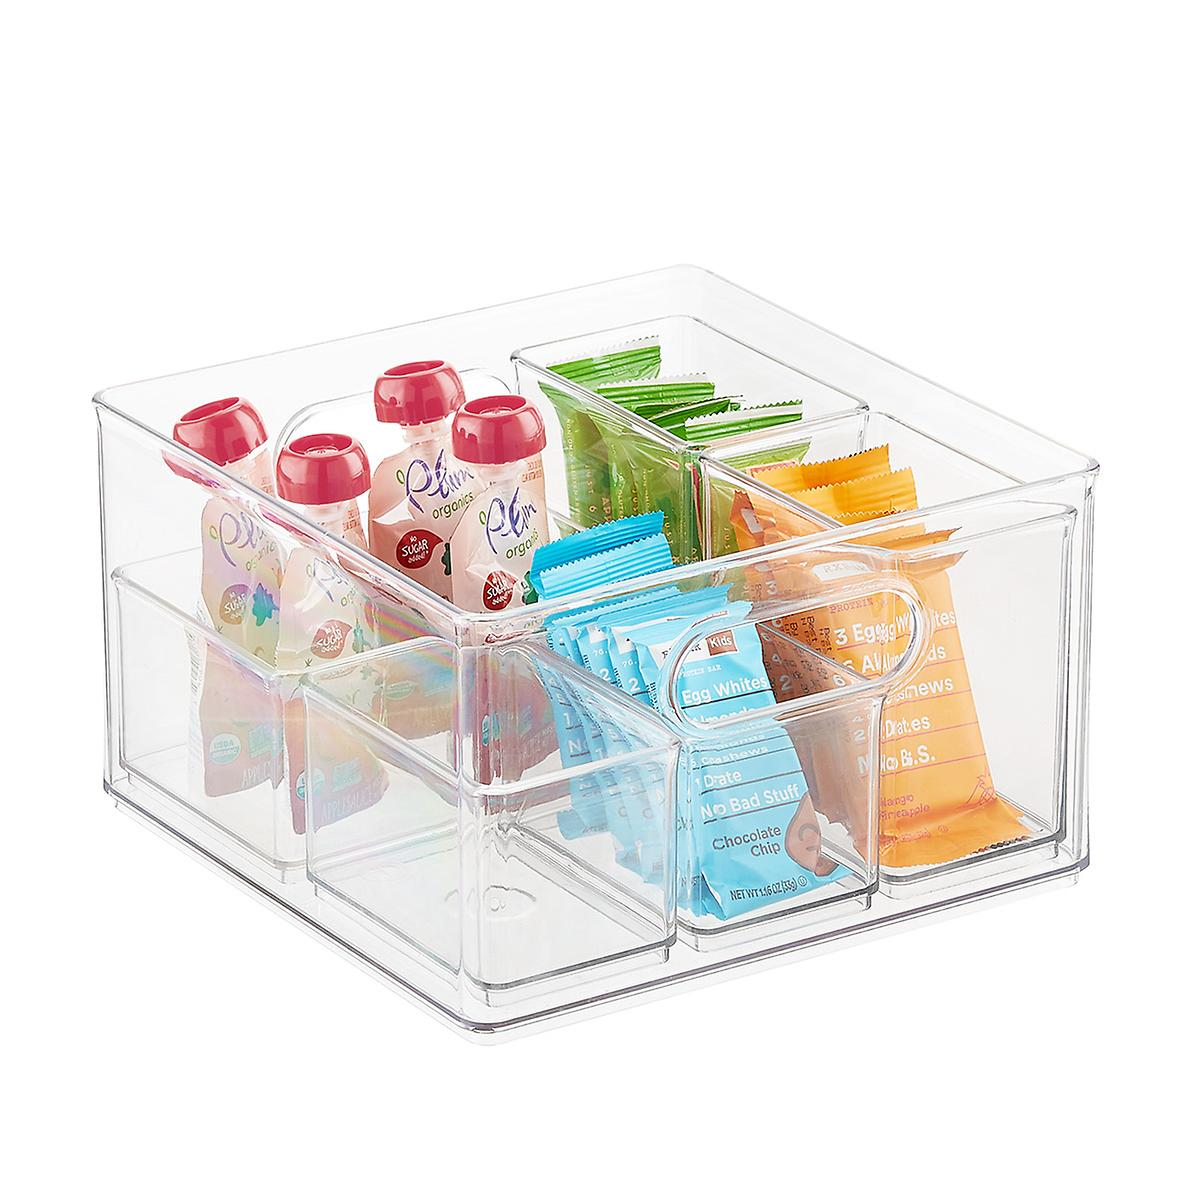 The Home Edit Organizer Bins